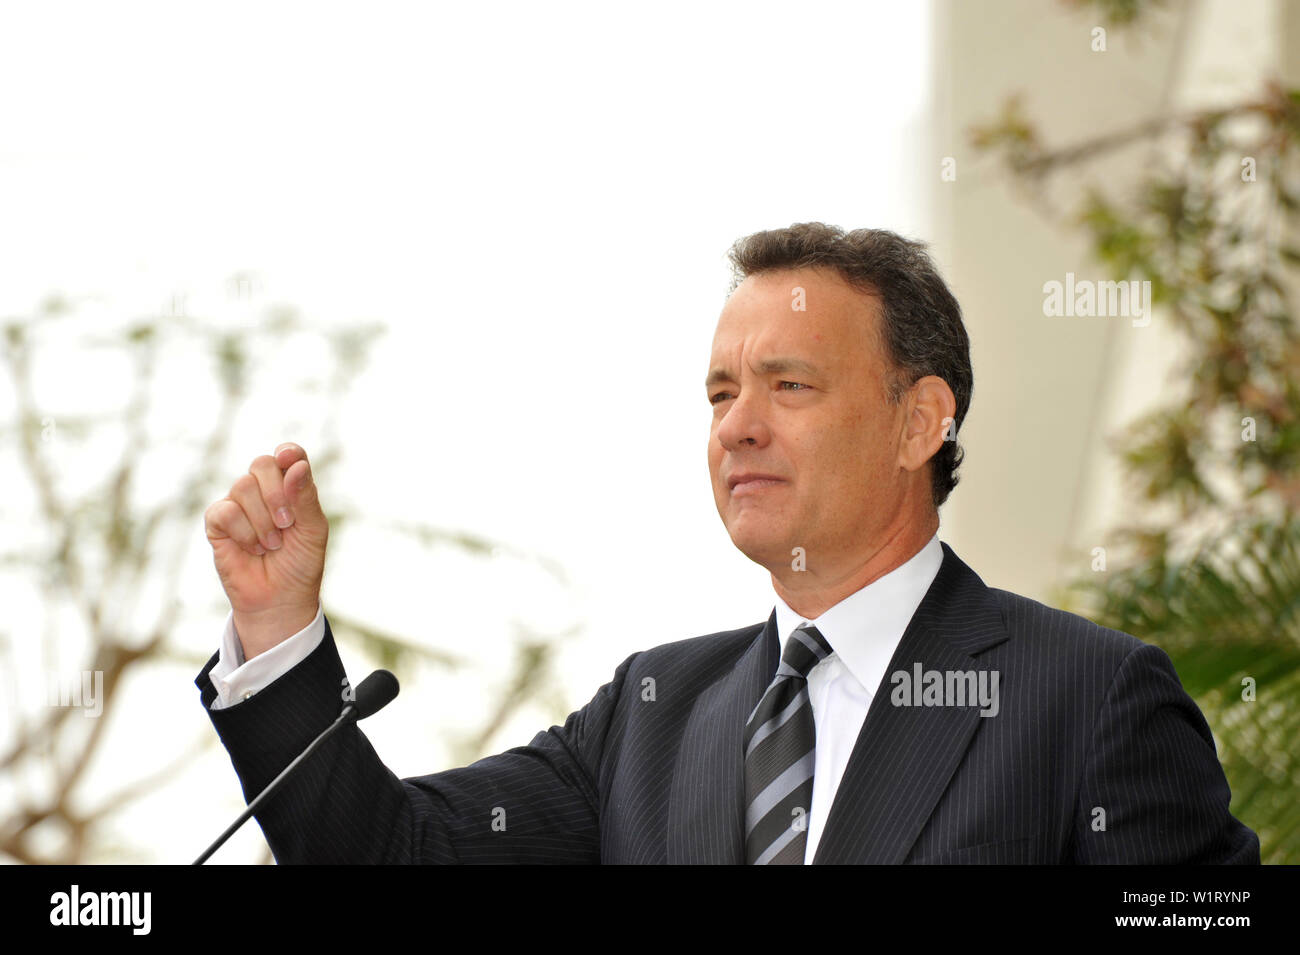 LOS ANGELES, CA. April 14, 2009: Tom Hanks at Hollywood Walk of Fame star ceremony honoring the late George Harrison. The star was placed outside the famous Capital Records building in Hollywood. © 2009 Paul Smith / Featureflash - Stock Image